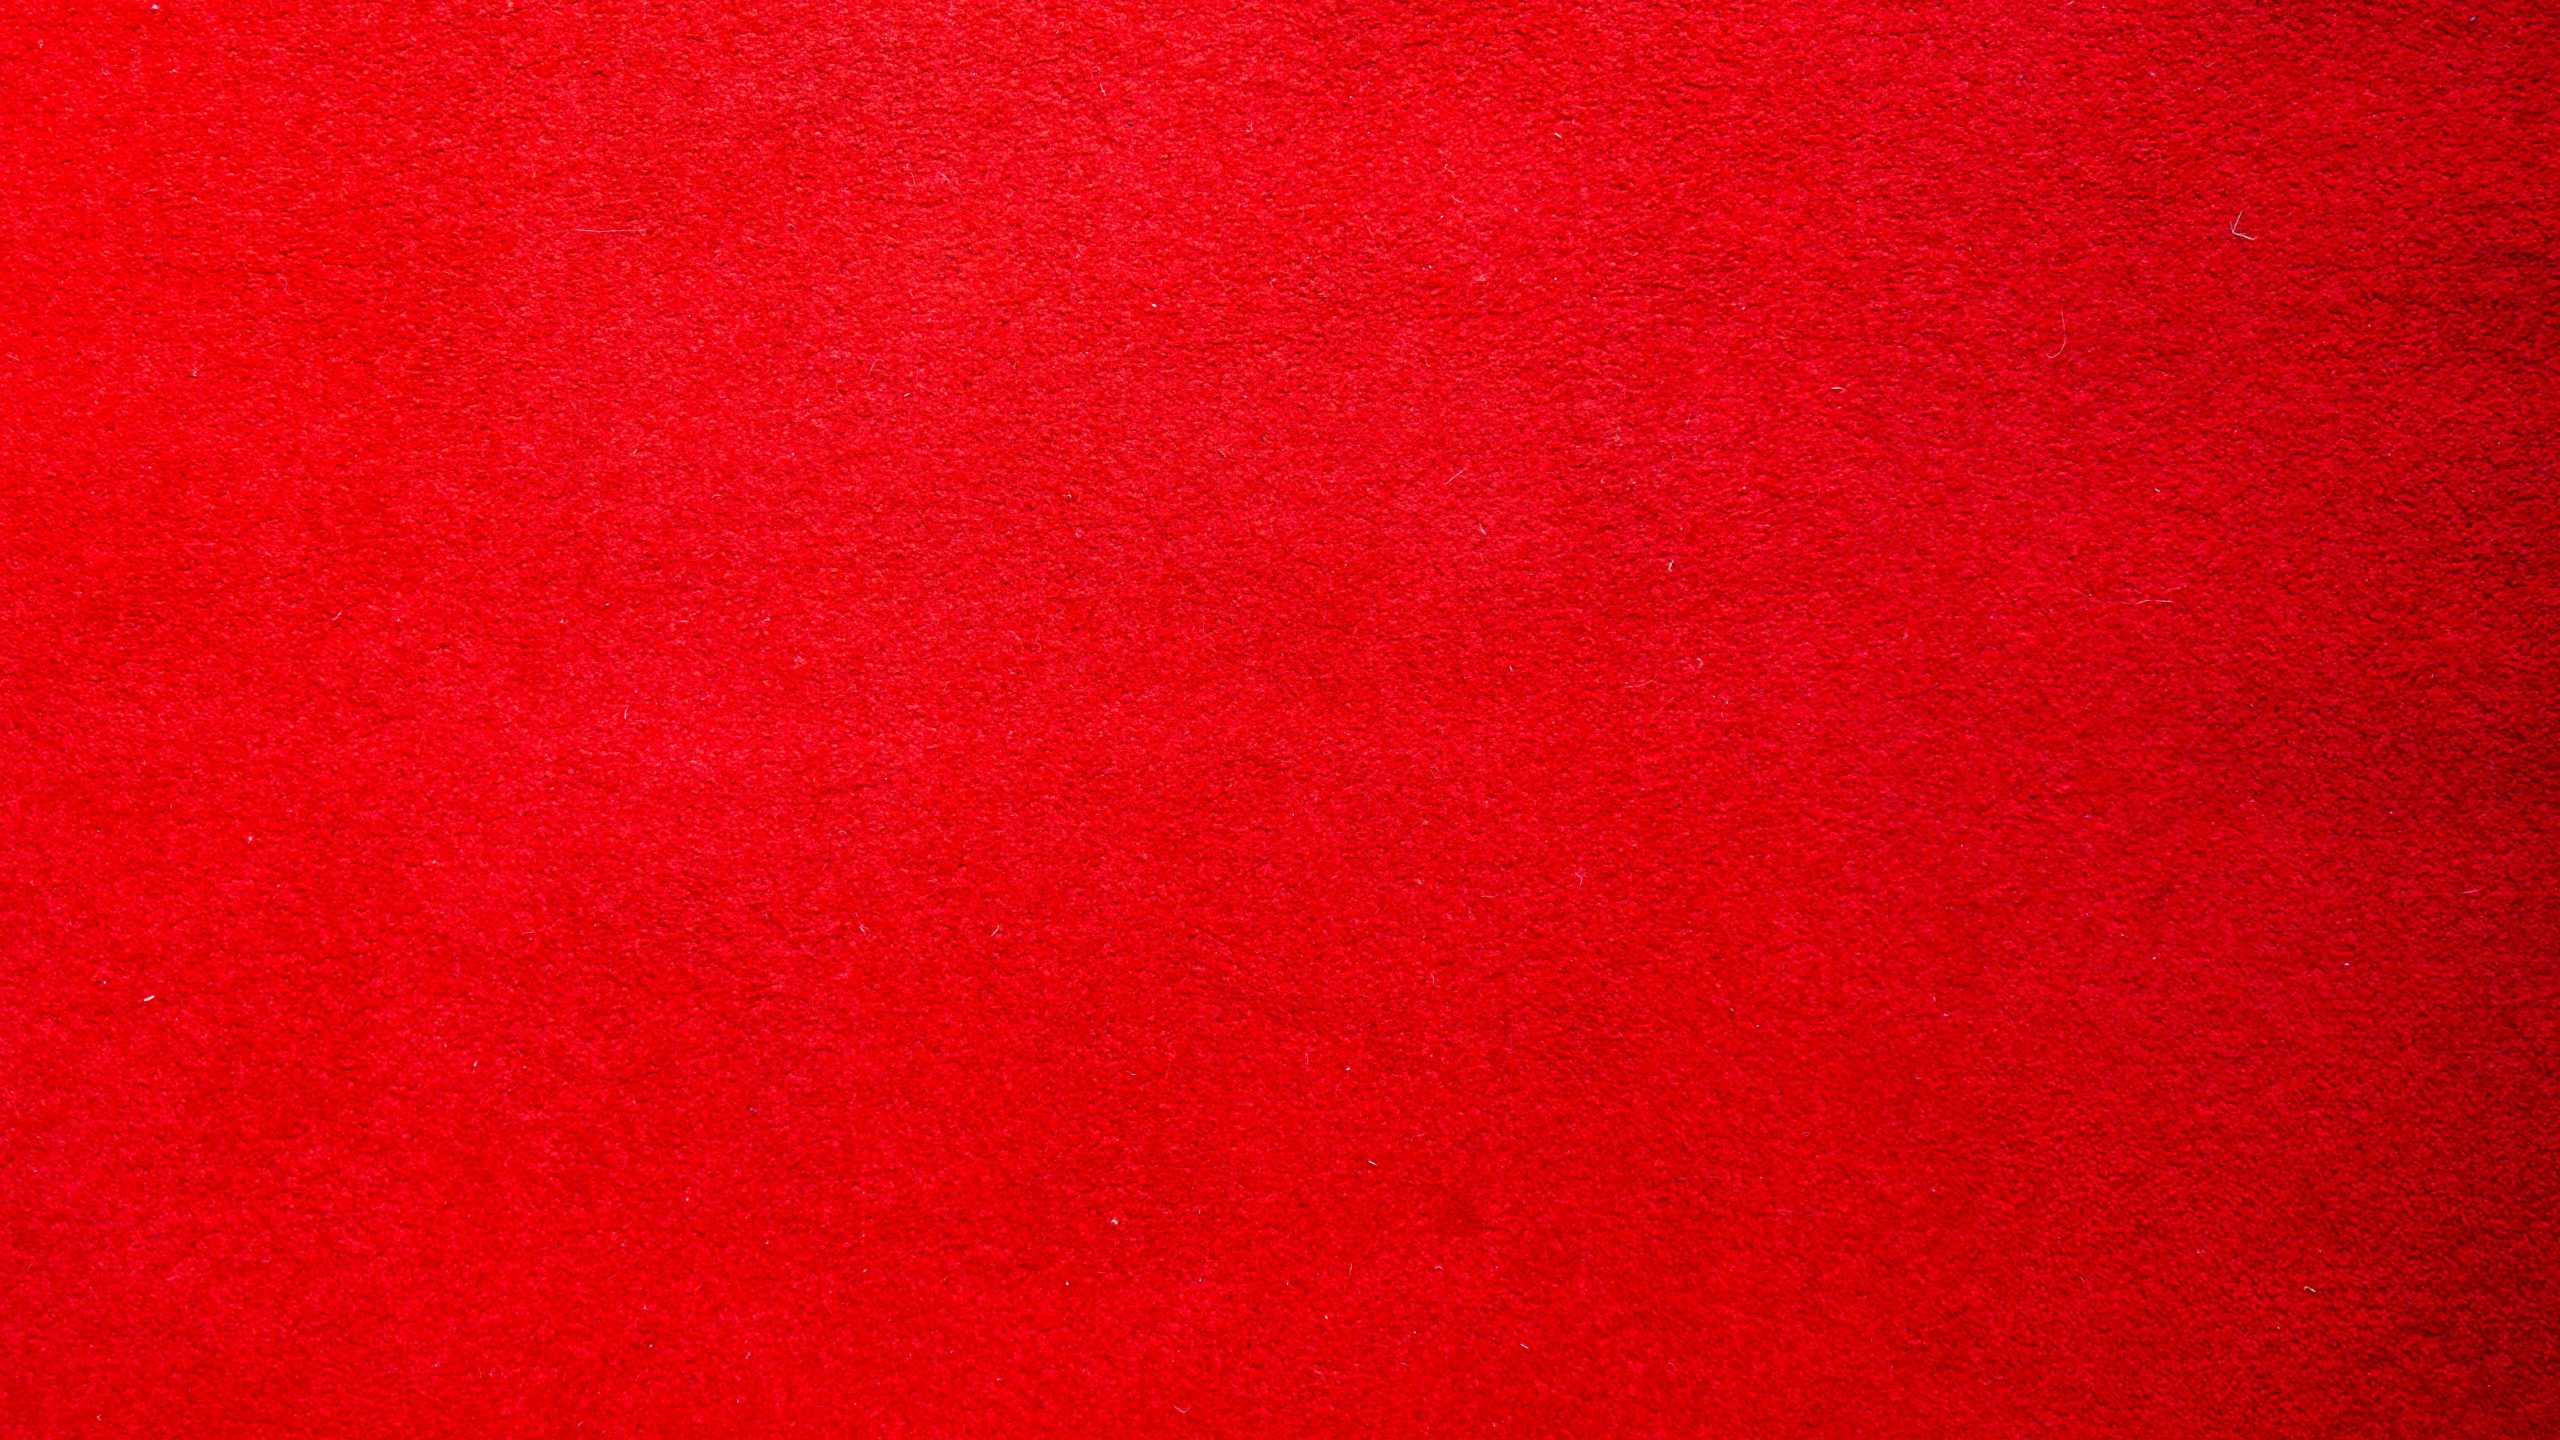 Latest Red Wallpaper images photo download